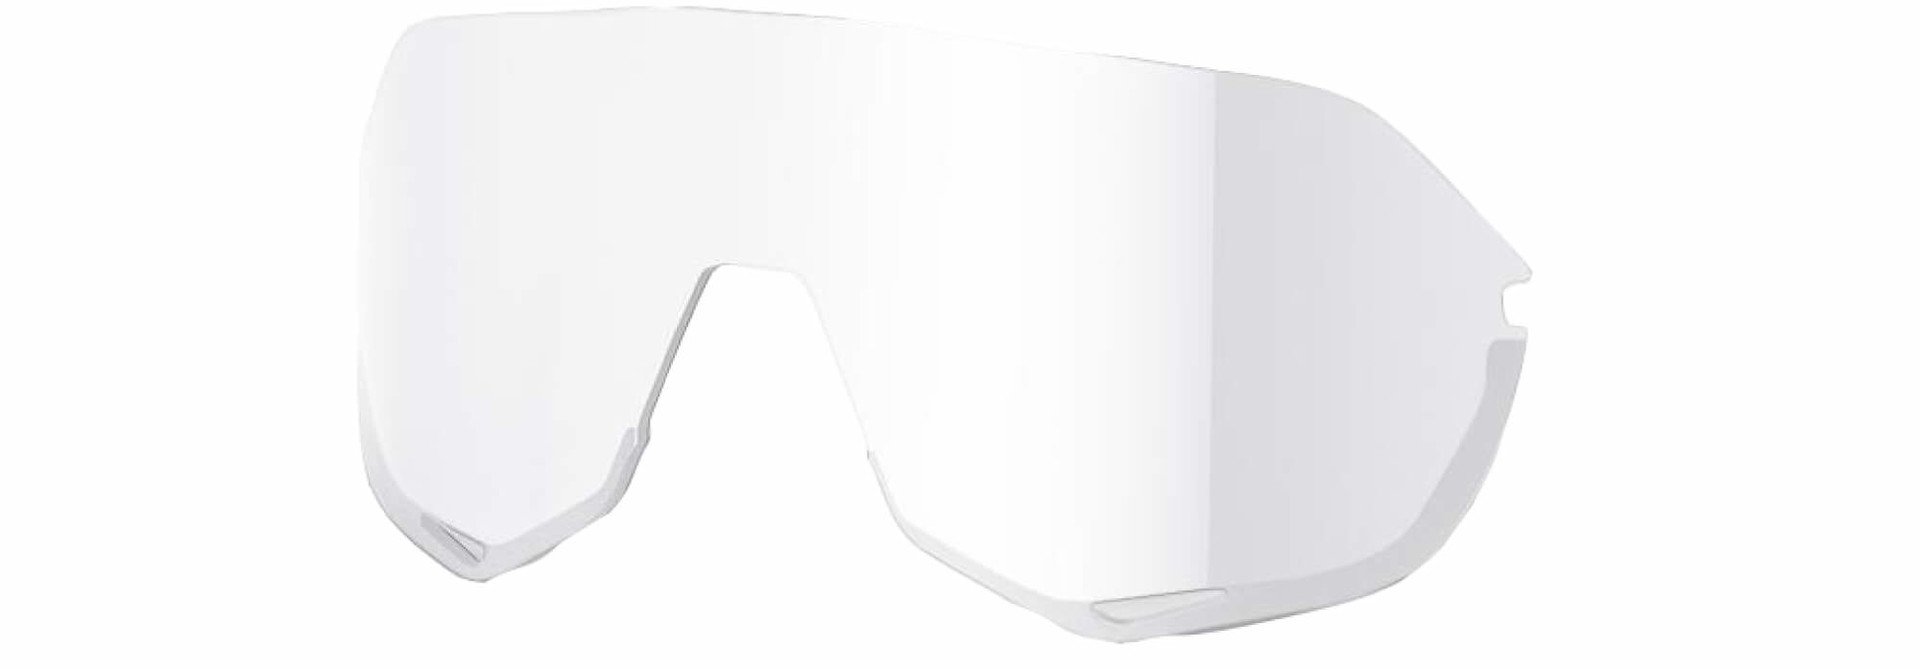 S2 Replacement Lens